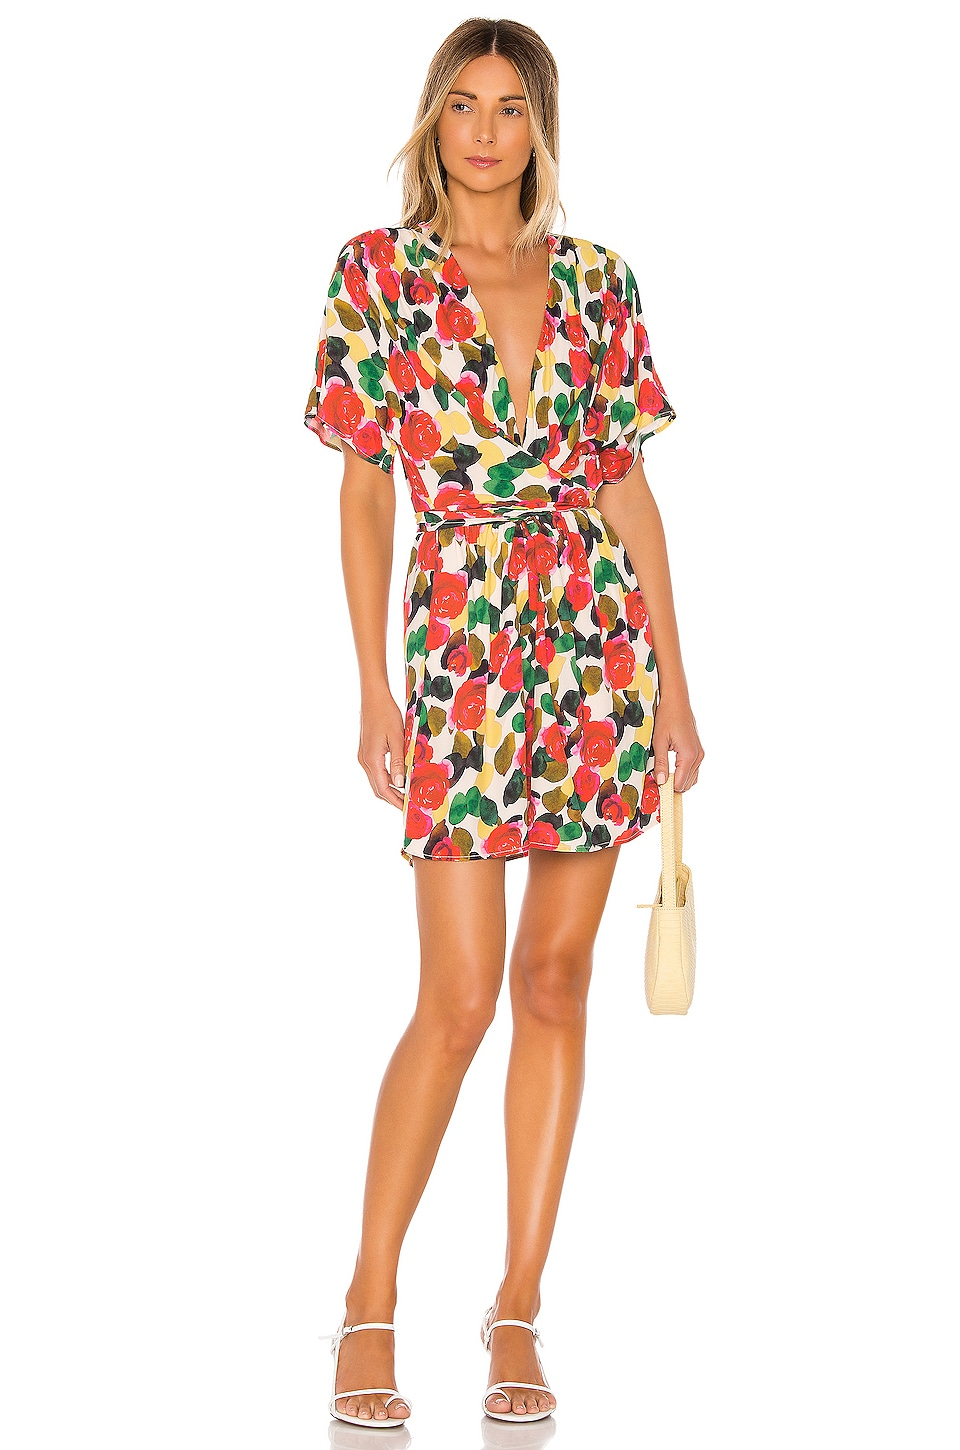 L'Academie The Ines Mini Dress in Watercolor Floral